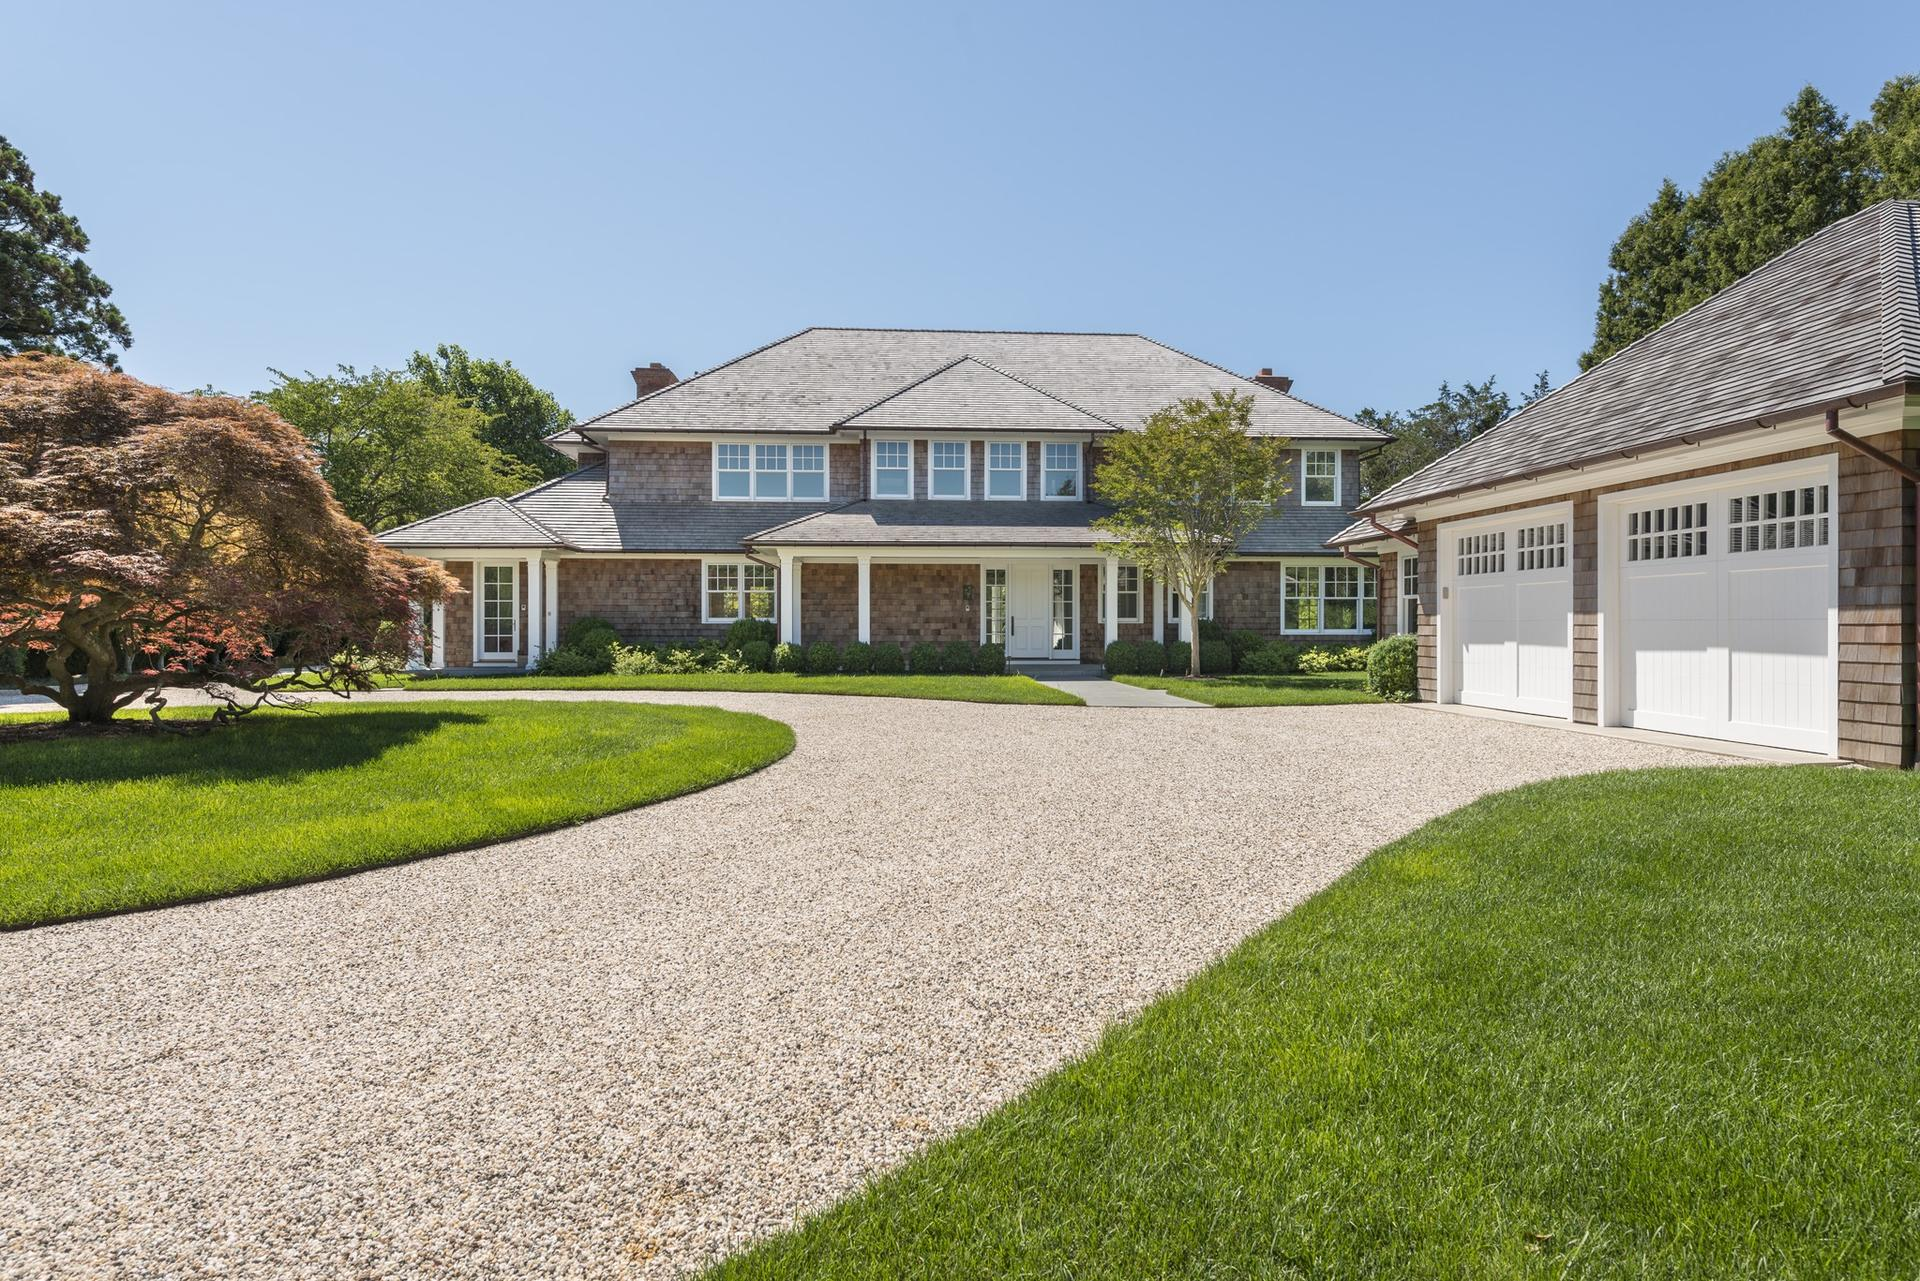 Single Family Home for Sale at Elegance And Tranquility On Heller Lane 12 Heller Lane, East Hampton, New York